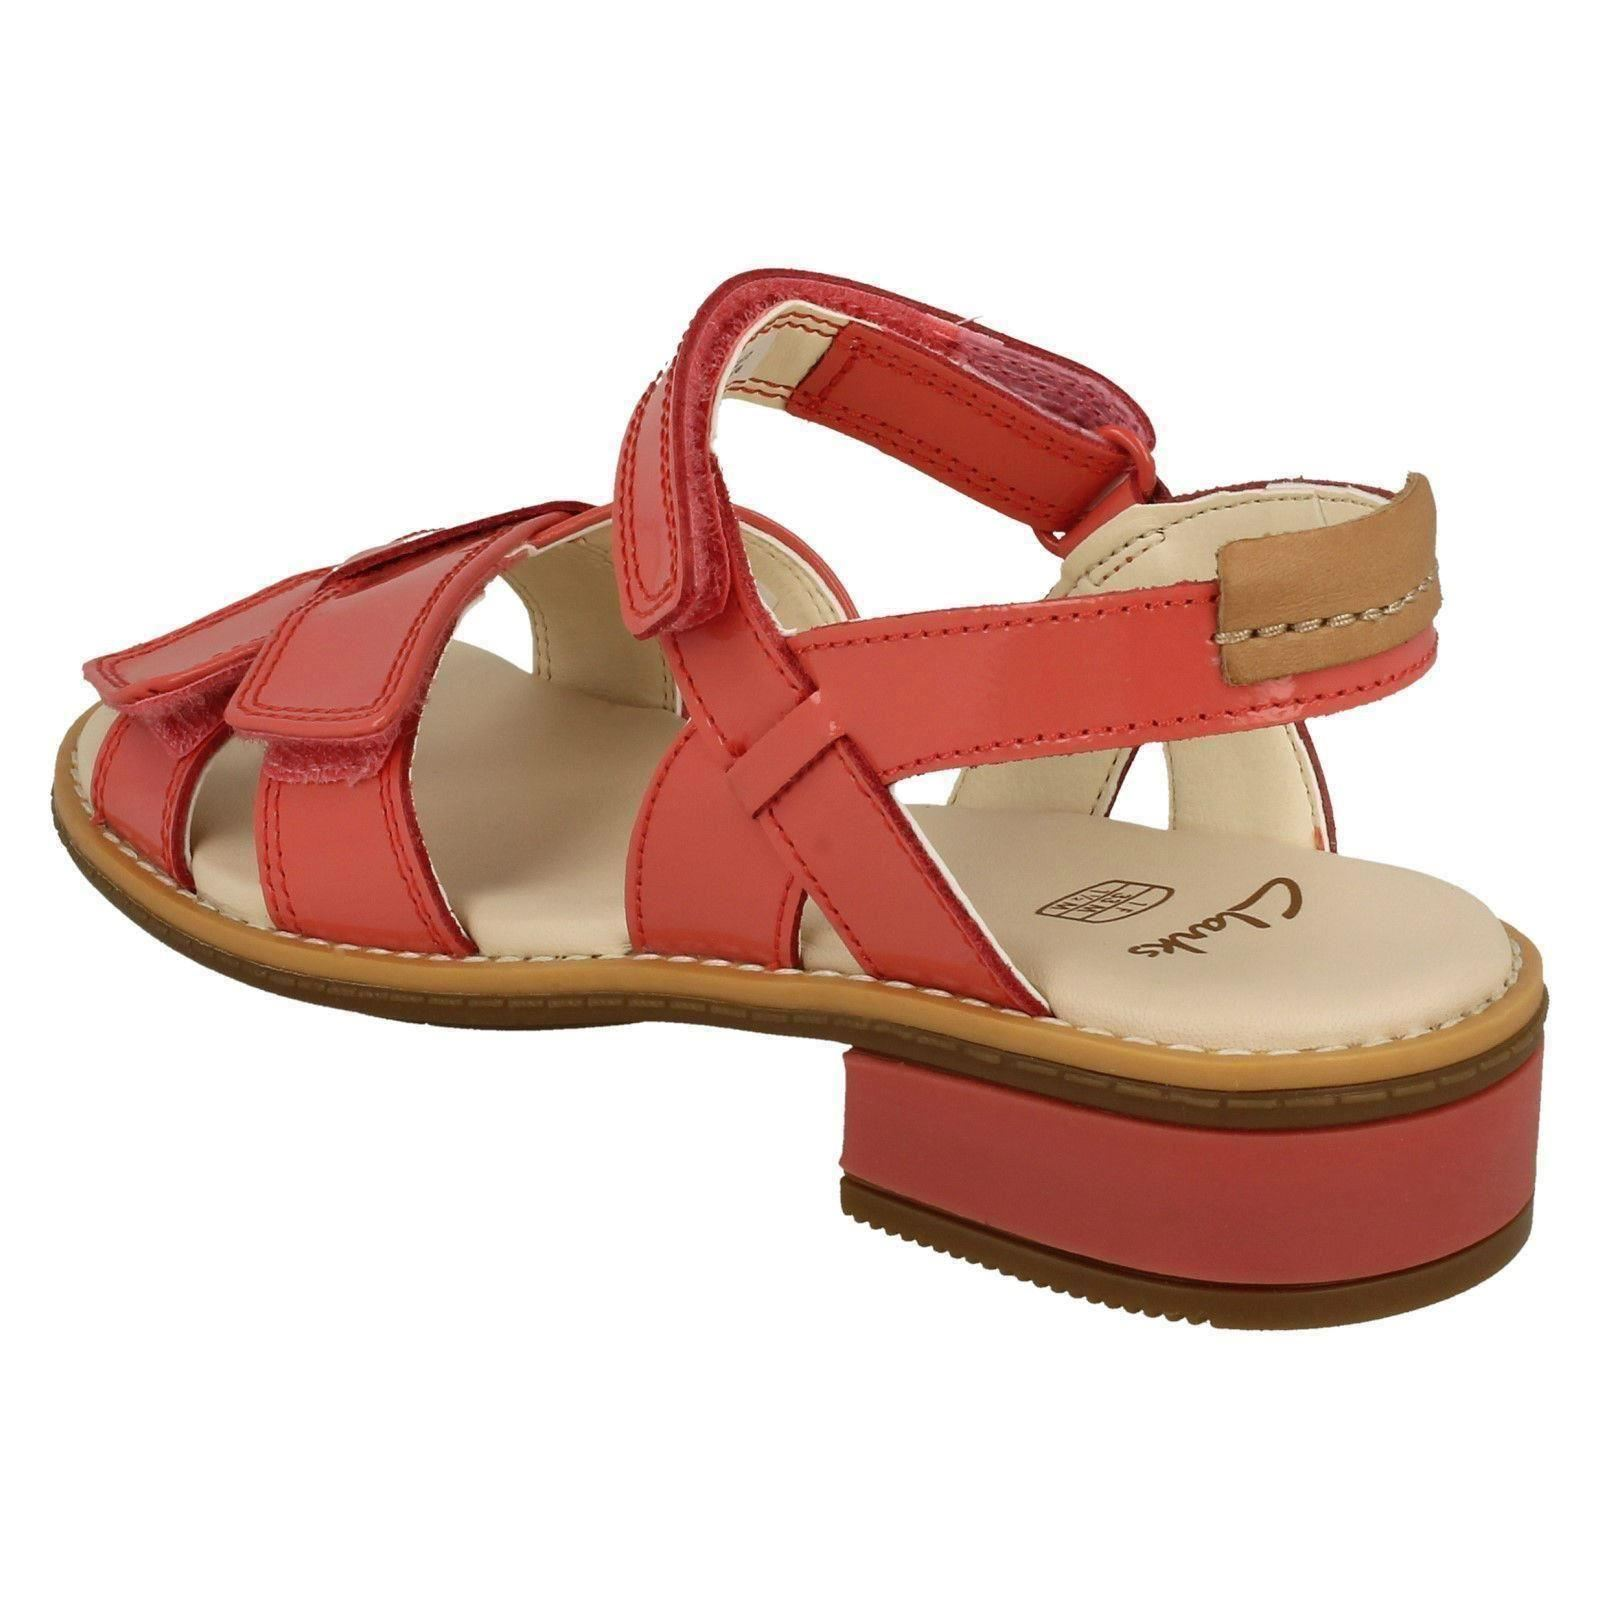 3908d830db0 Girls Clarks Patent Leather Casual Sandals Style - Darcy Charm Coral ...